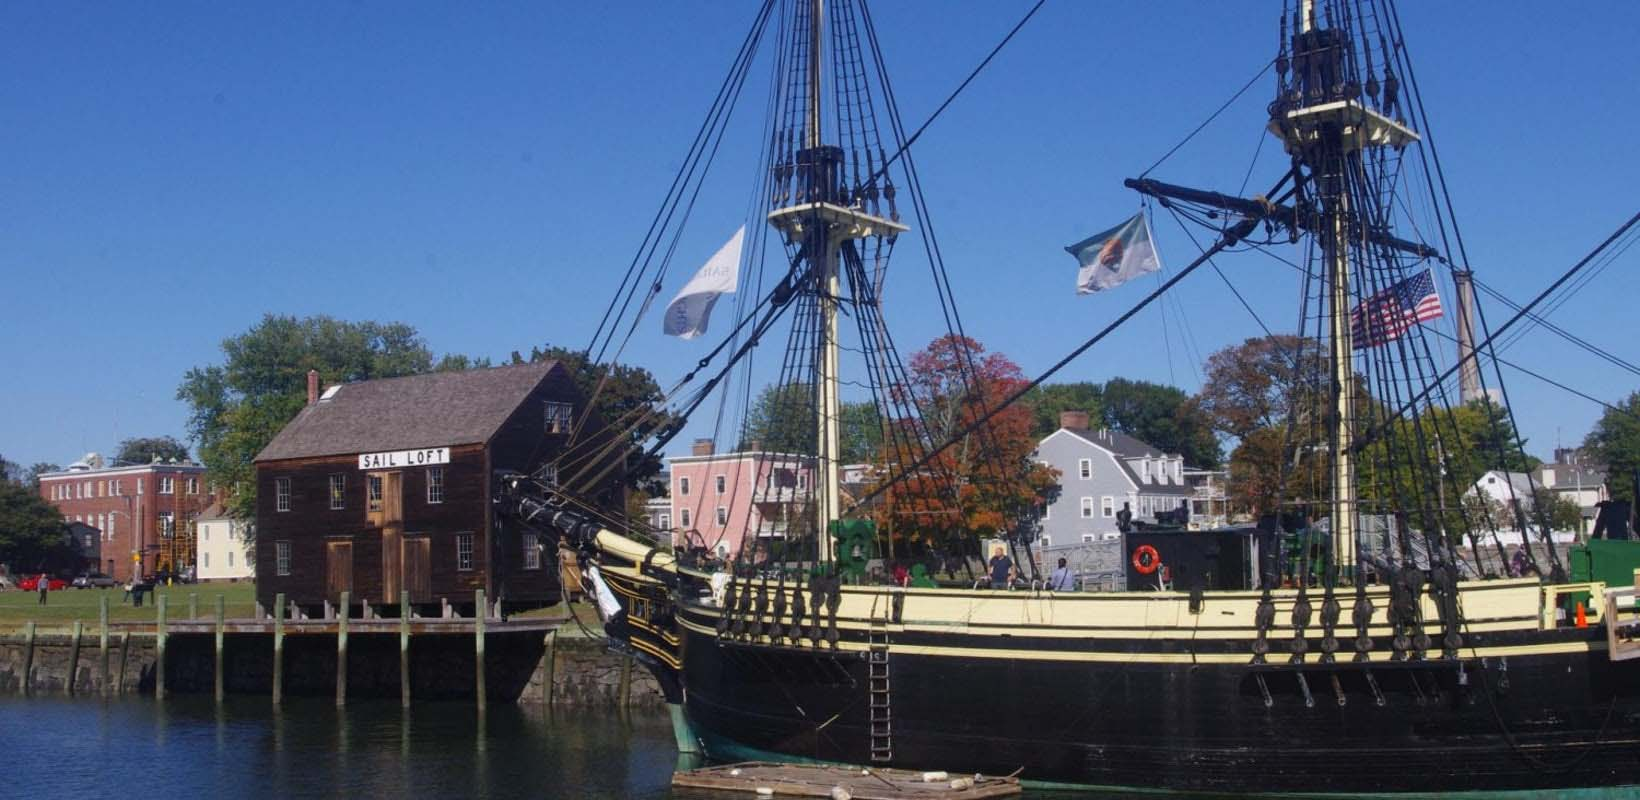 Salem Witch City and Marblehead tour